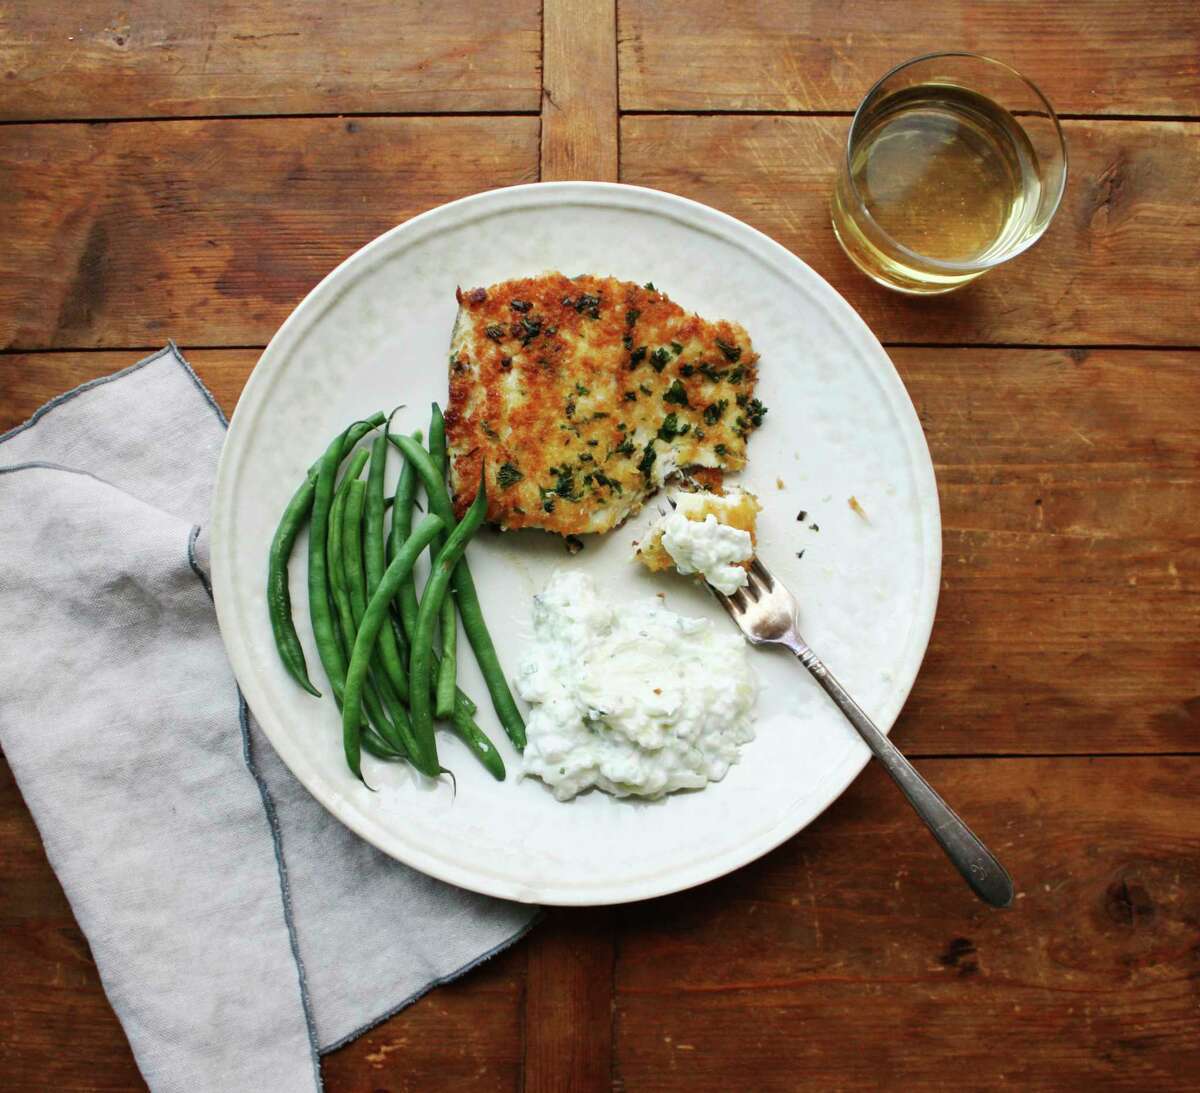 This December 2016 photo shows panko-crusted fish with tzatziki in New York. Tzatziki is one of the most classic Greek sauces, served with everything from pita (as a dip) to lamb to seafood. It?'s a refreshing mix of cucumber, garlic and yogurt. (Laura Agra via AP) ORG XMIT: NYLA201